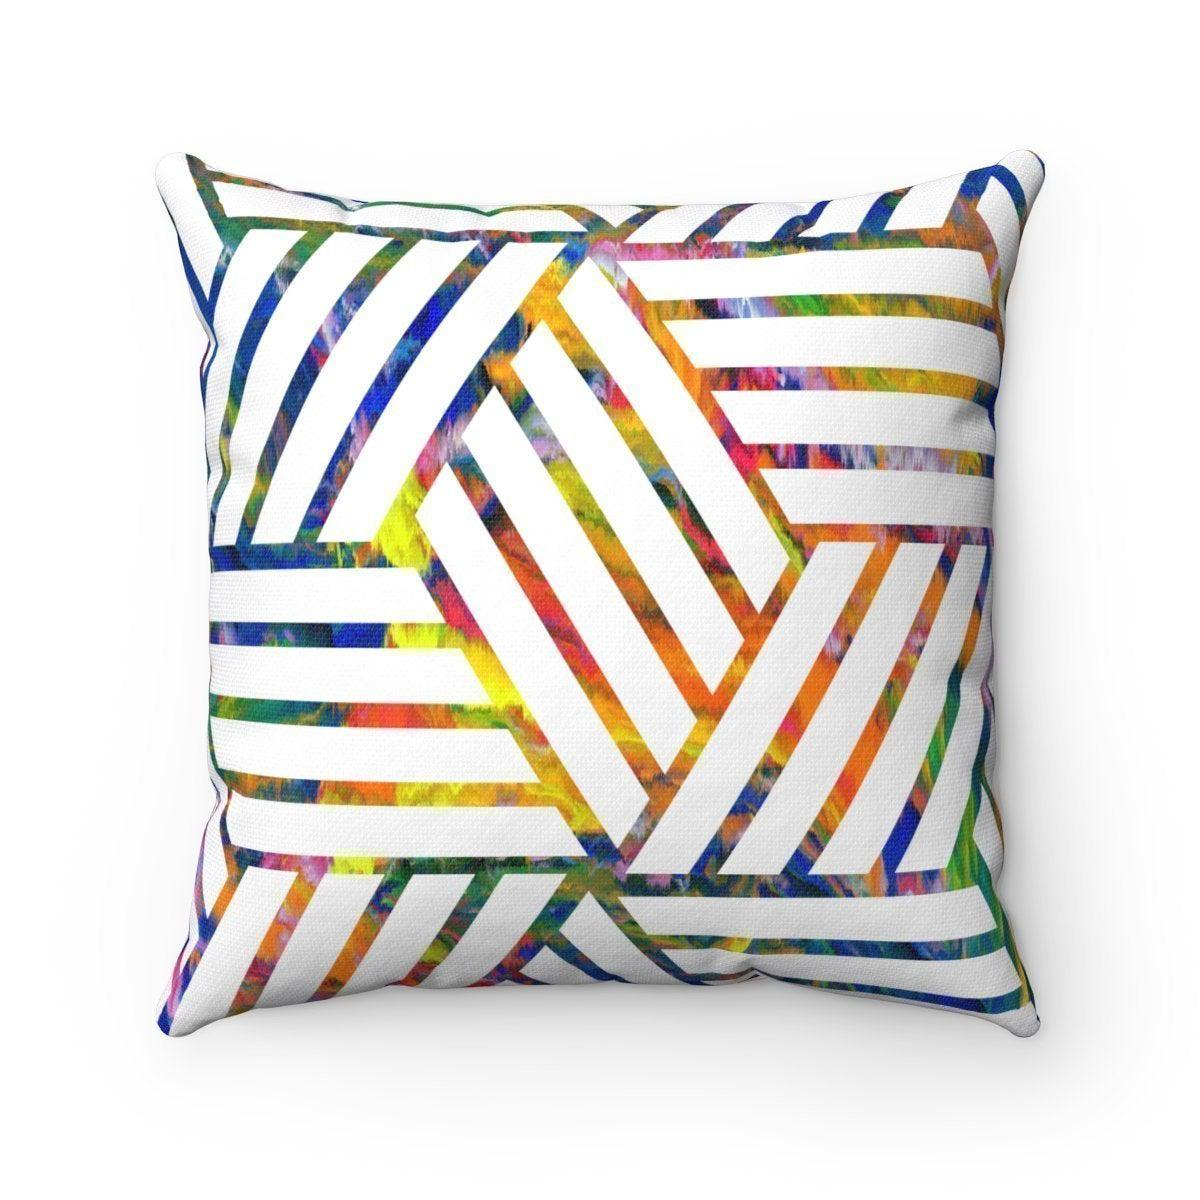 Geometric decorative cushion cover-Home Decor - Decorative Accents - Pillows & Throws - Decorative Pillows-Maison d'Elite-Très Elite